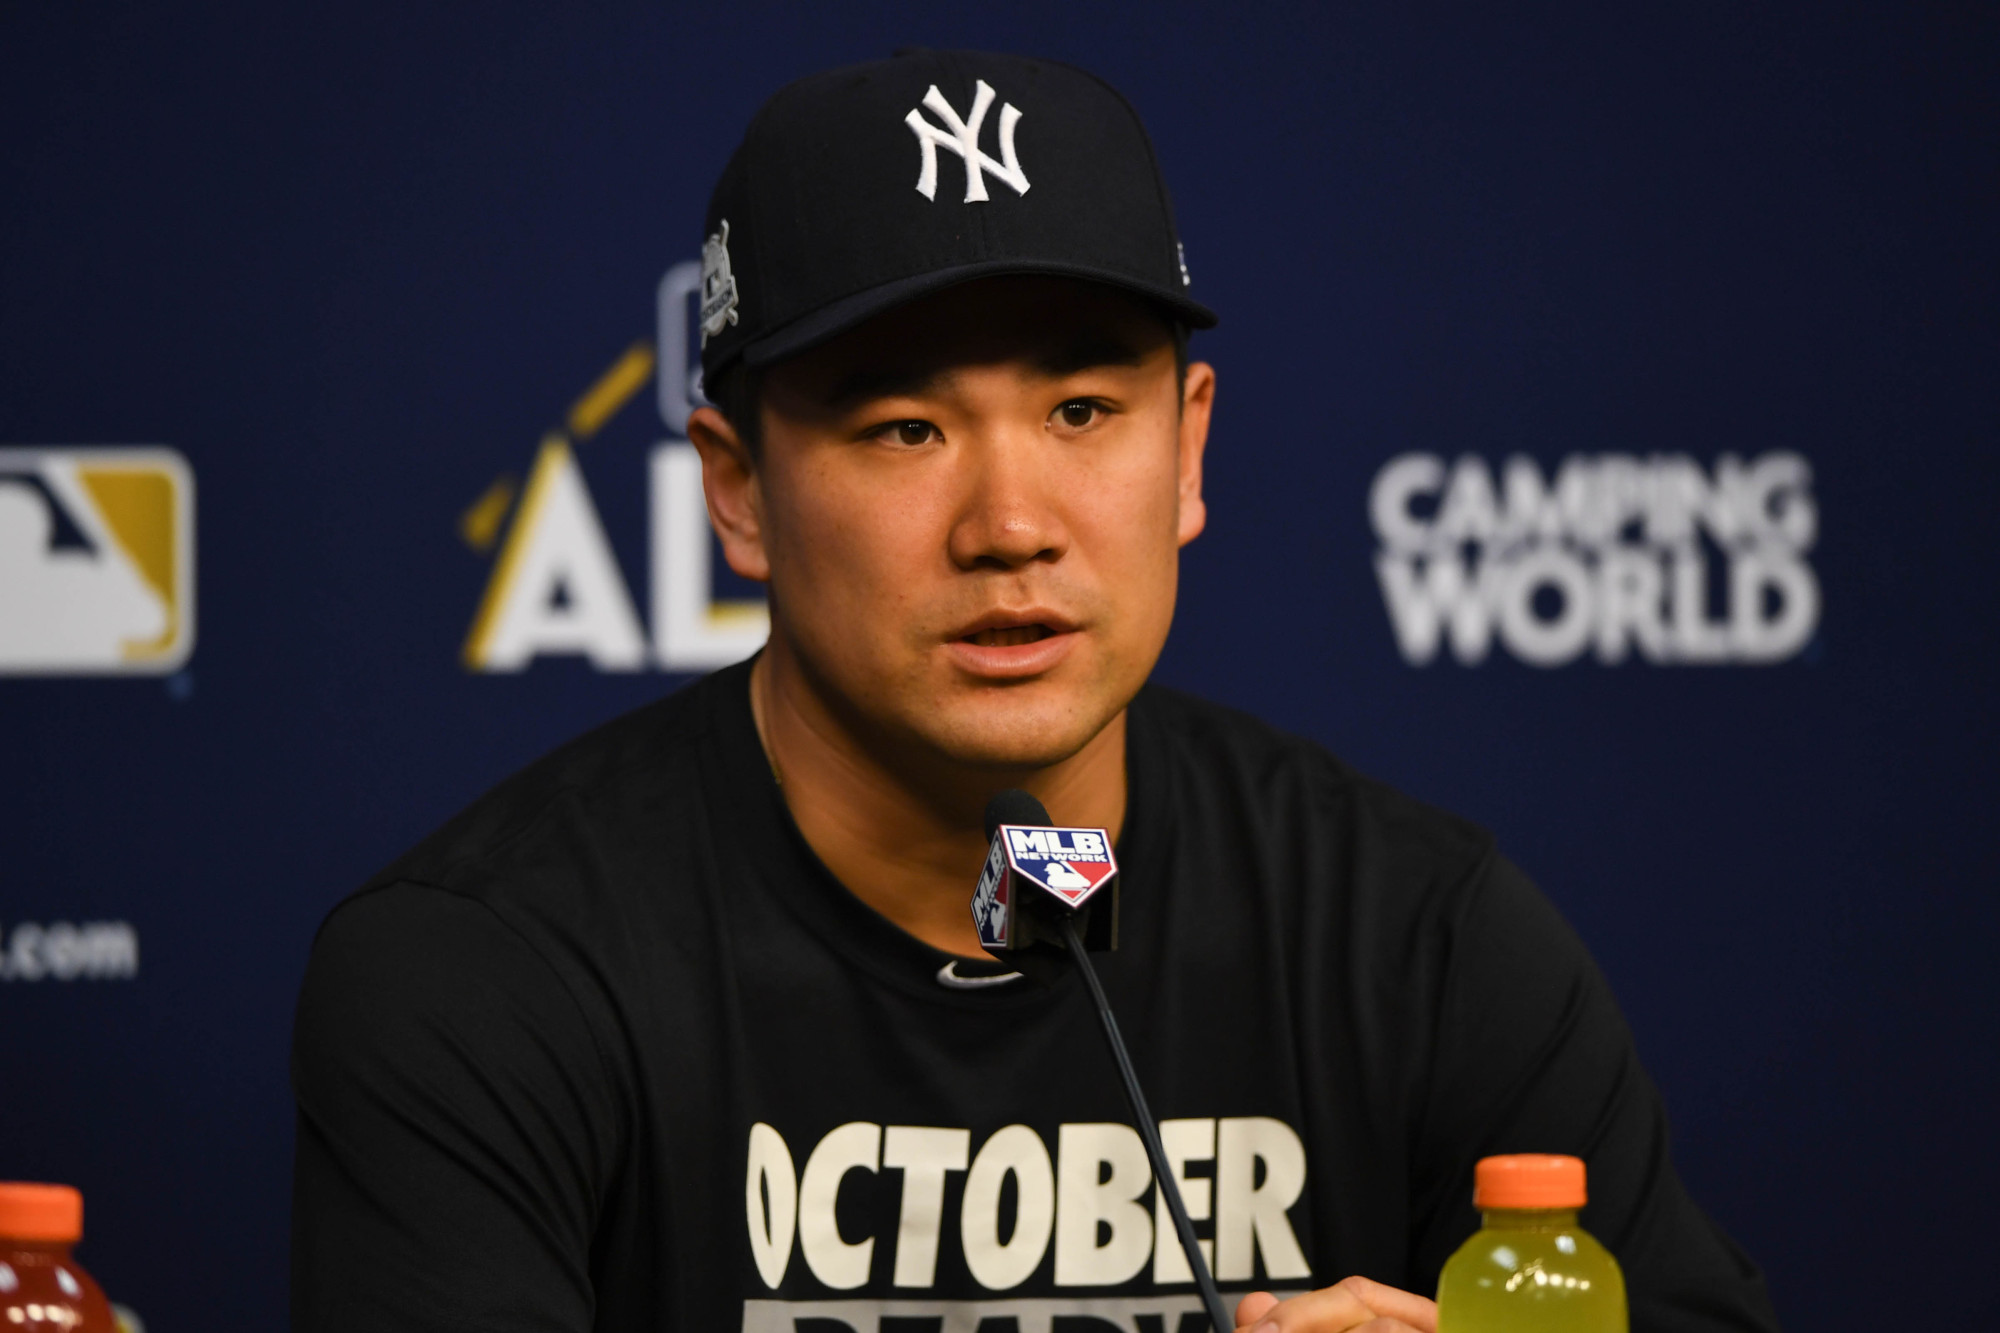 Yankees hurler Masahiro Tanaka speaks to reporters on Thursday in Houston. | USA TODAY / VIA REUTERS